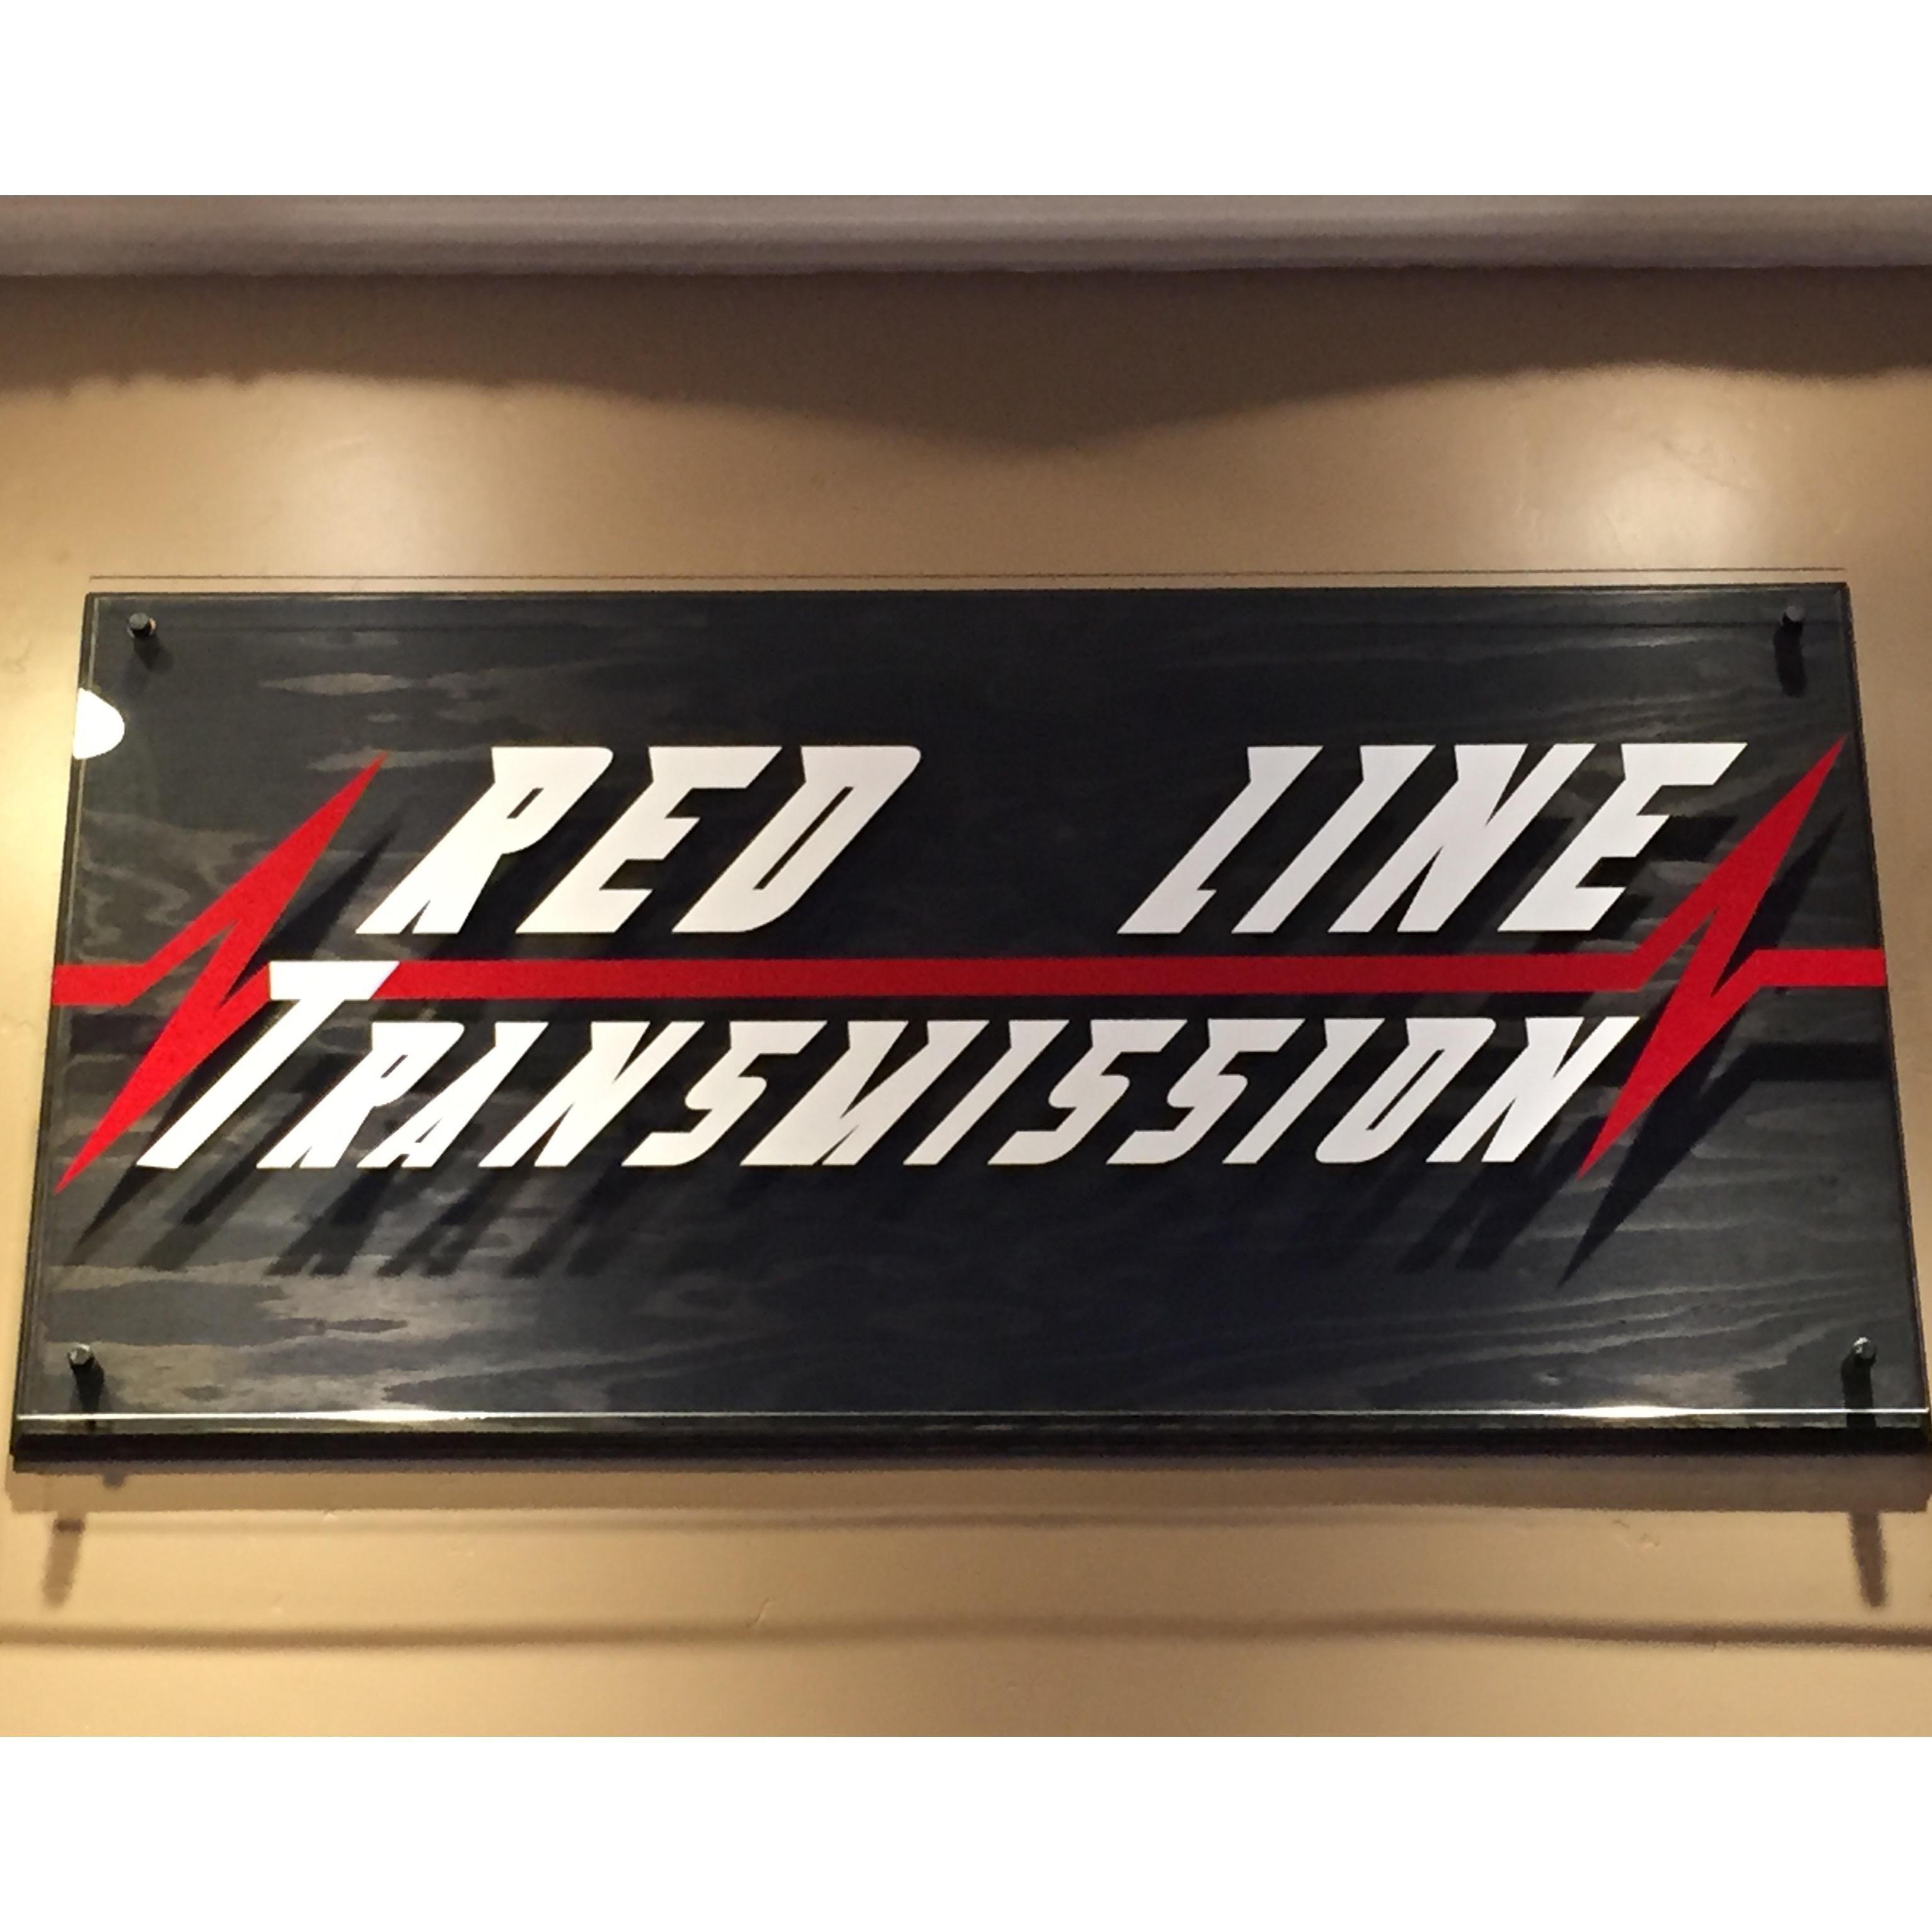 Red Line Transmission - Boise, ID - General Auto Repair & Service